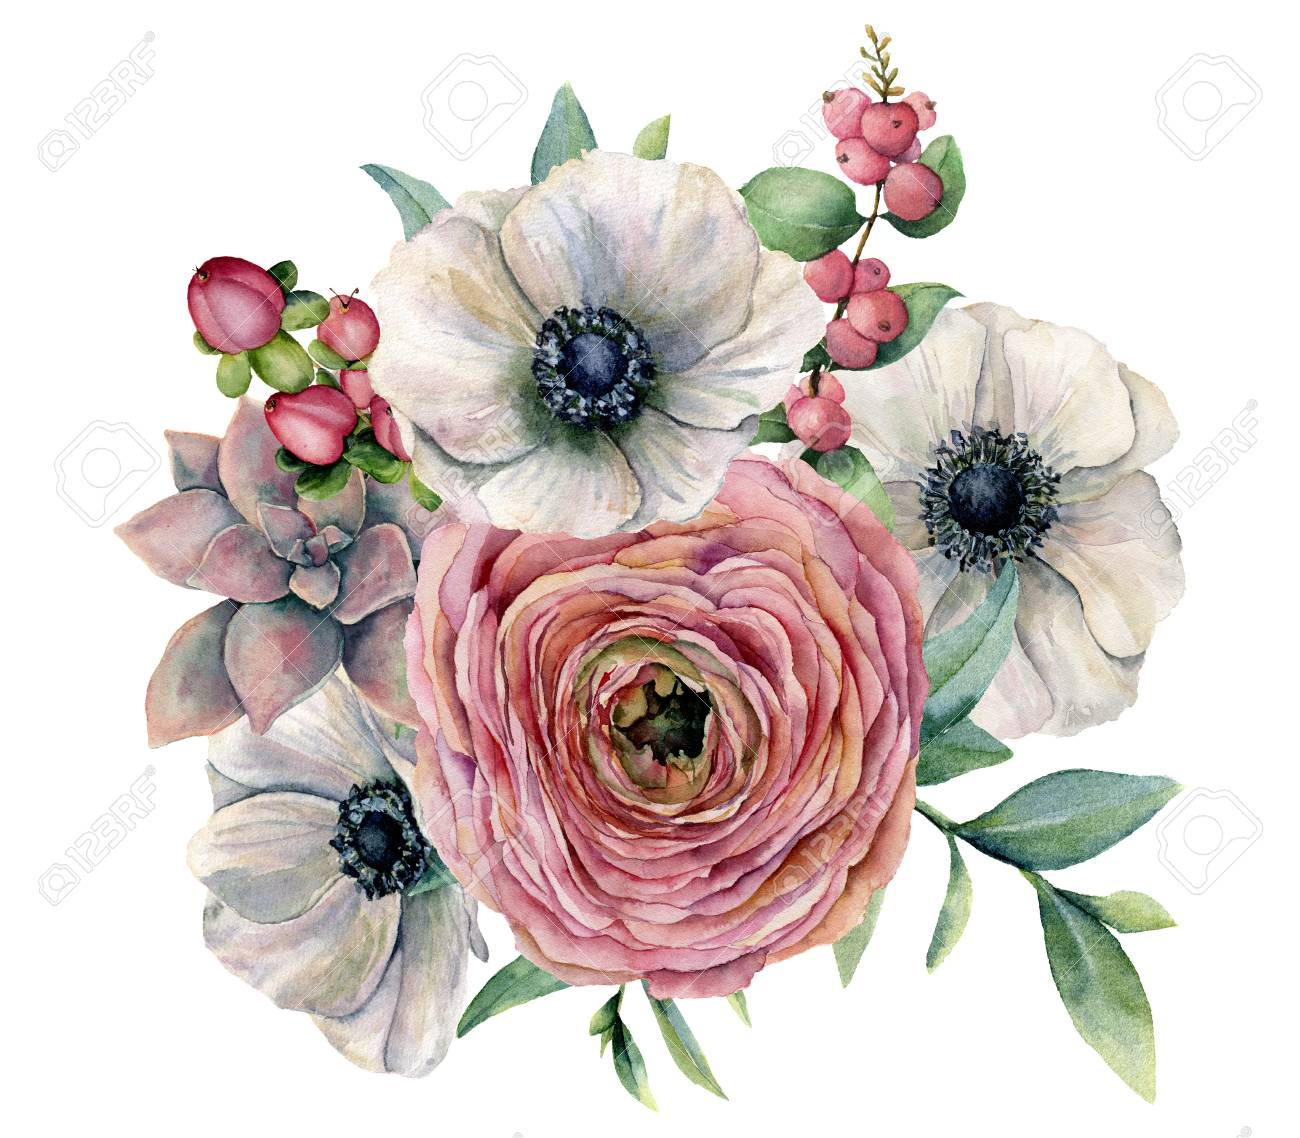 Watercolor Succulent Ranunculus And Anemone Bouquet Hand Painted Stock Photo Picture And Royalty Free Image Image 101010165